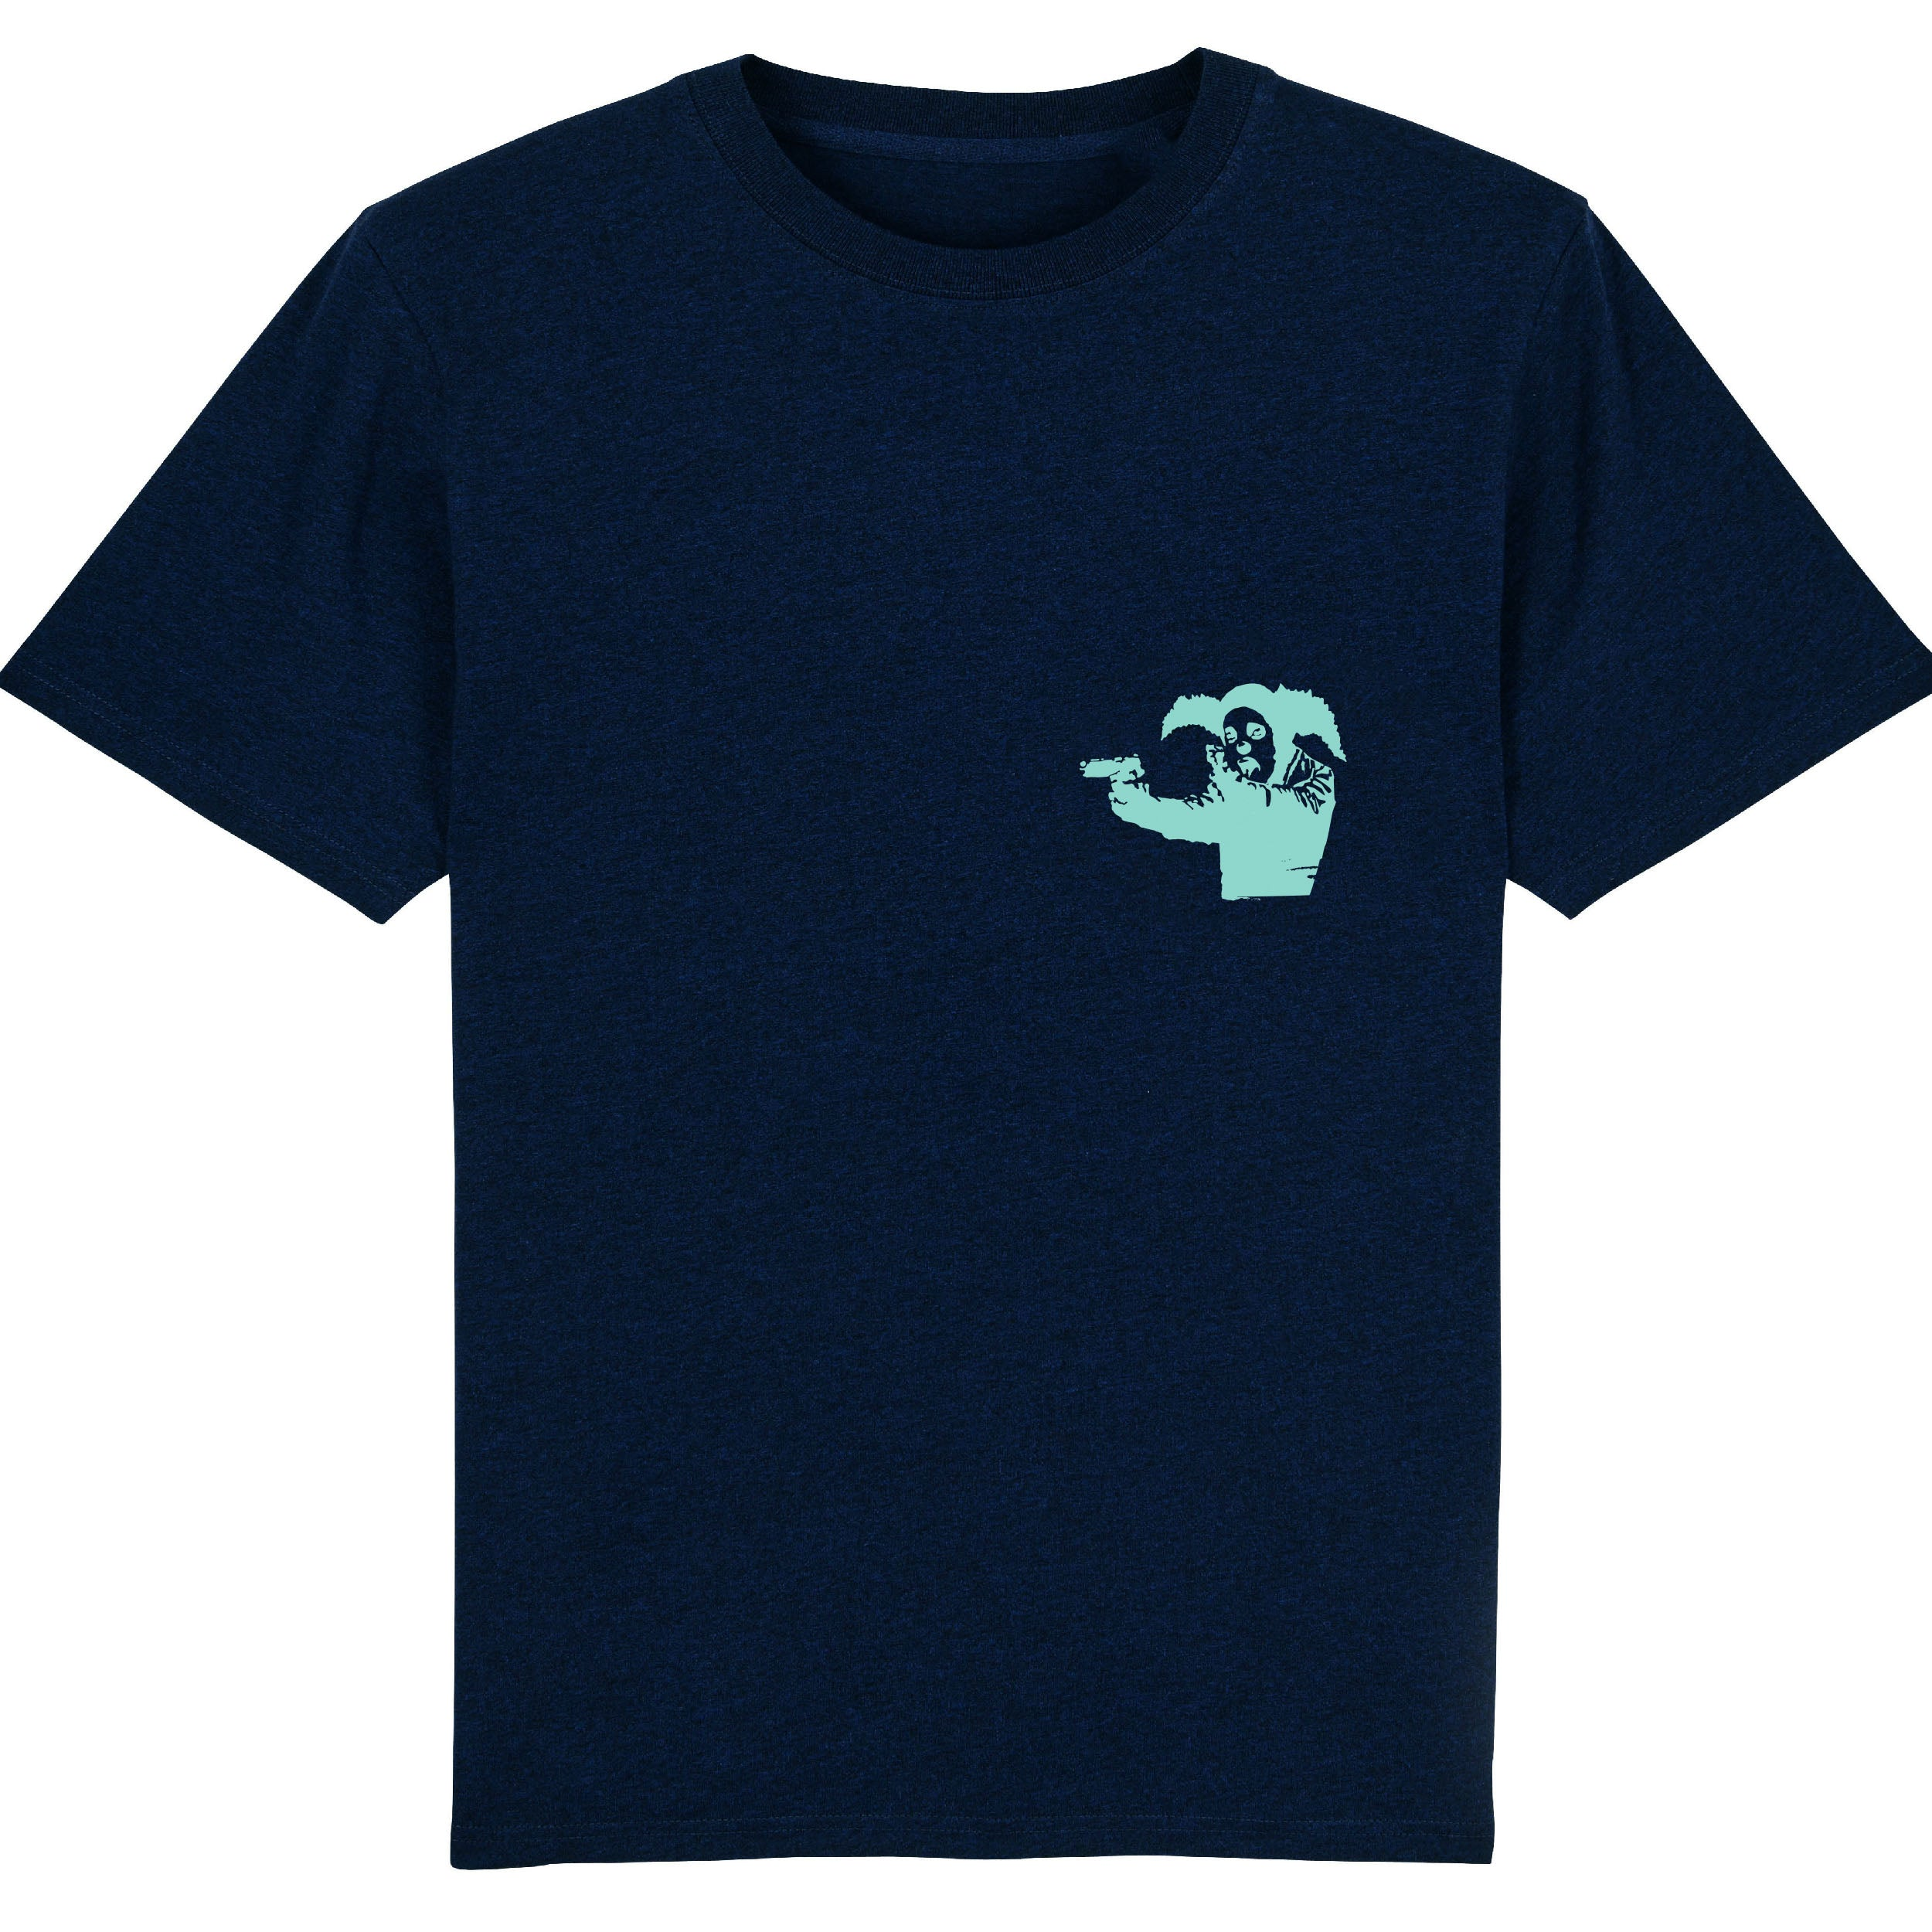 Clown Skateboards - Daily Operation Tee - Navy / Green